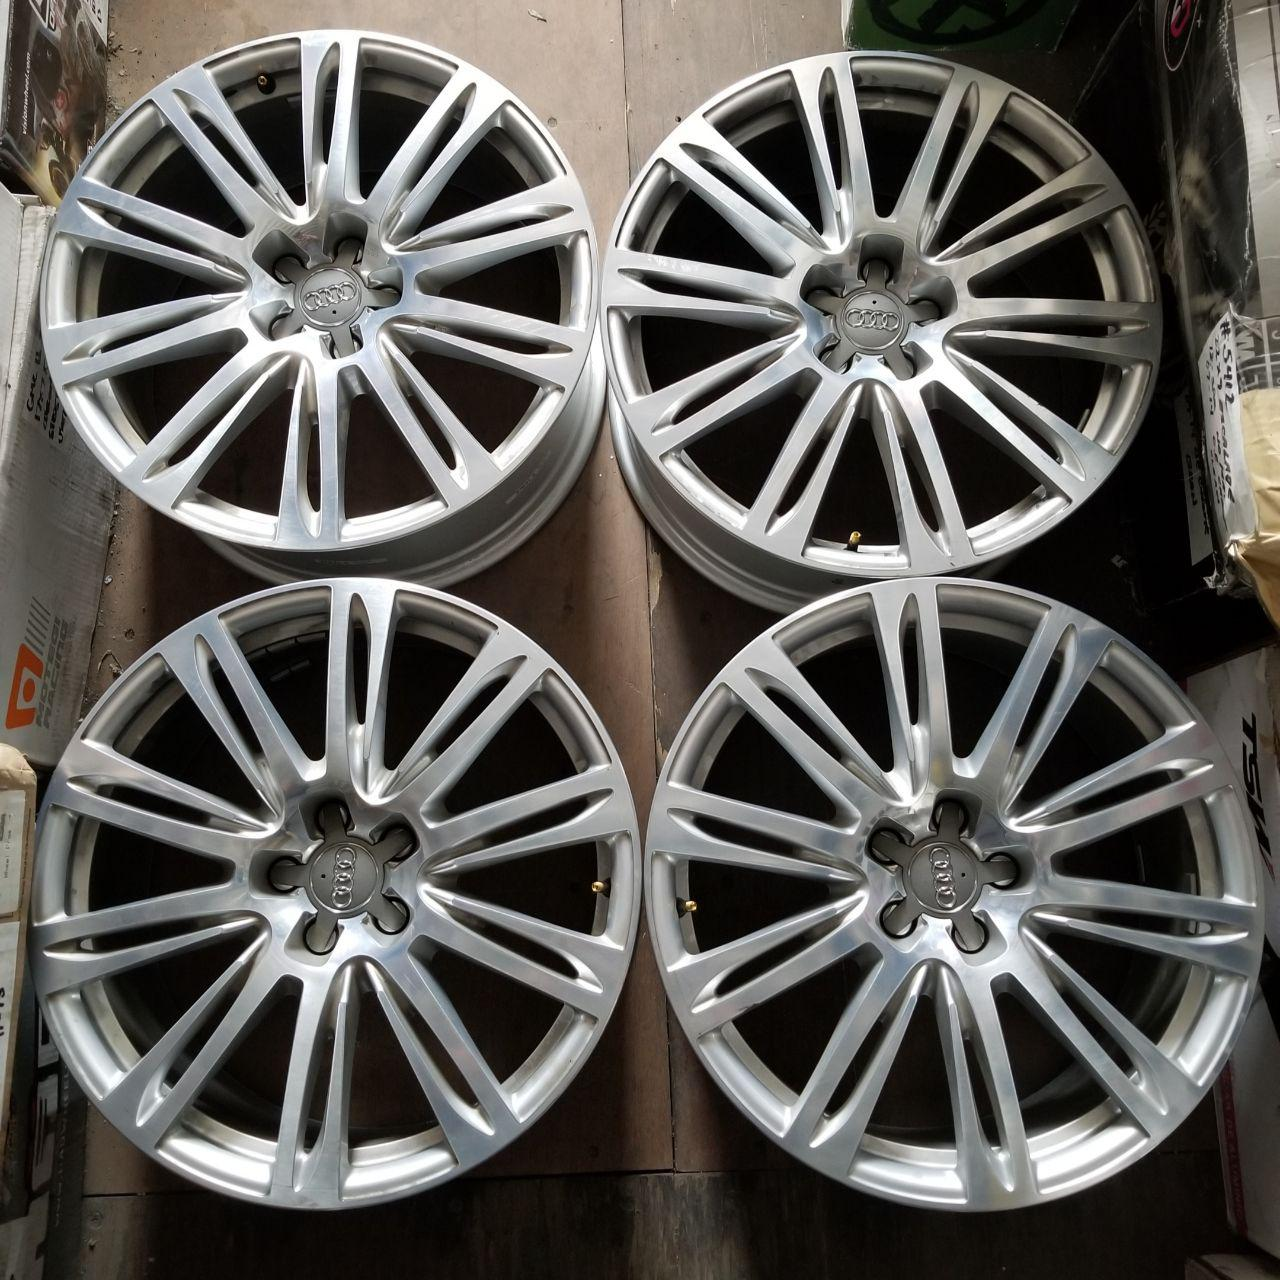 - OEM WHEELS - 2011-2015 AUDI A8 20x9 10 SPLIT SPOKE Hollander # 58871 /  USED